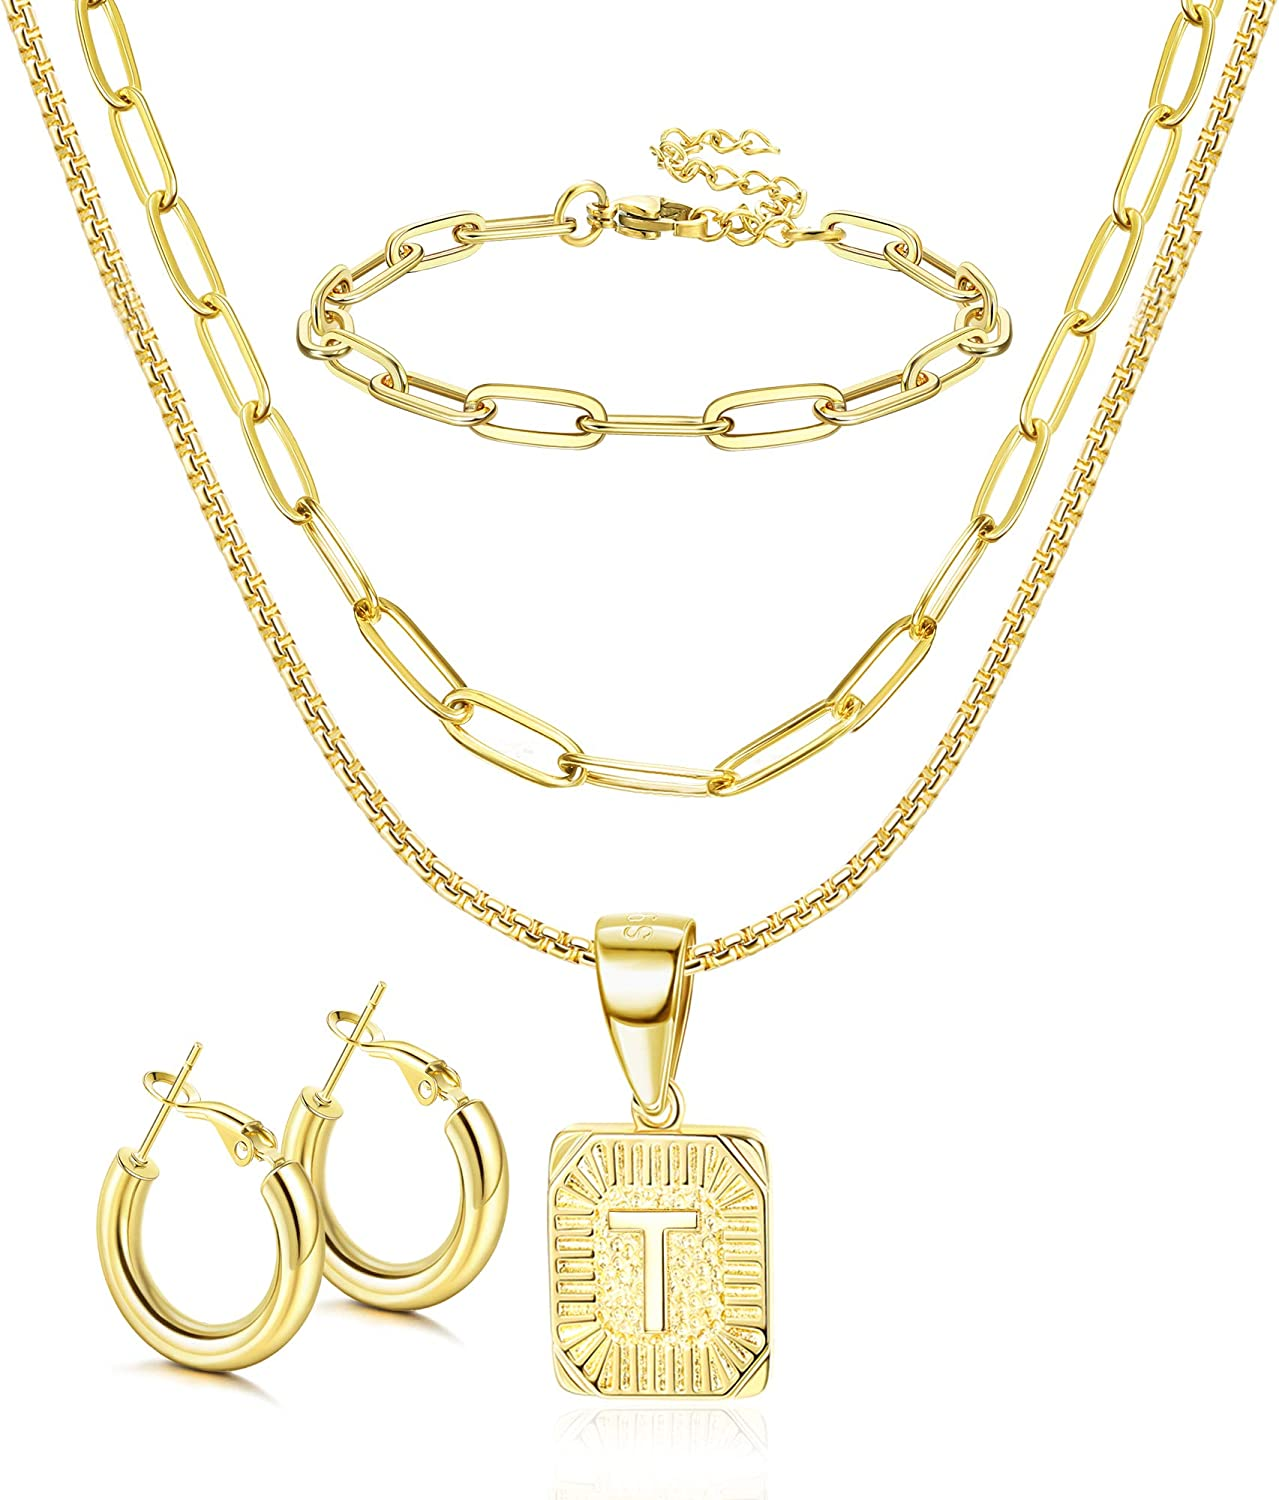 ORAZIO Initial Letter Pendant Necklace Mens Womens Thick 14K Gold Plated Hoop Earrings for Women Paperclip Chain Link Choker Necklace and Link Bracelet Set Gold Plated Jewelry Set for Women